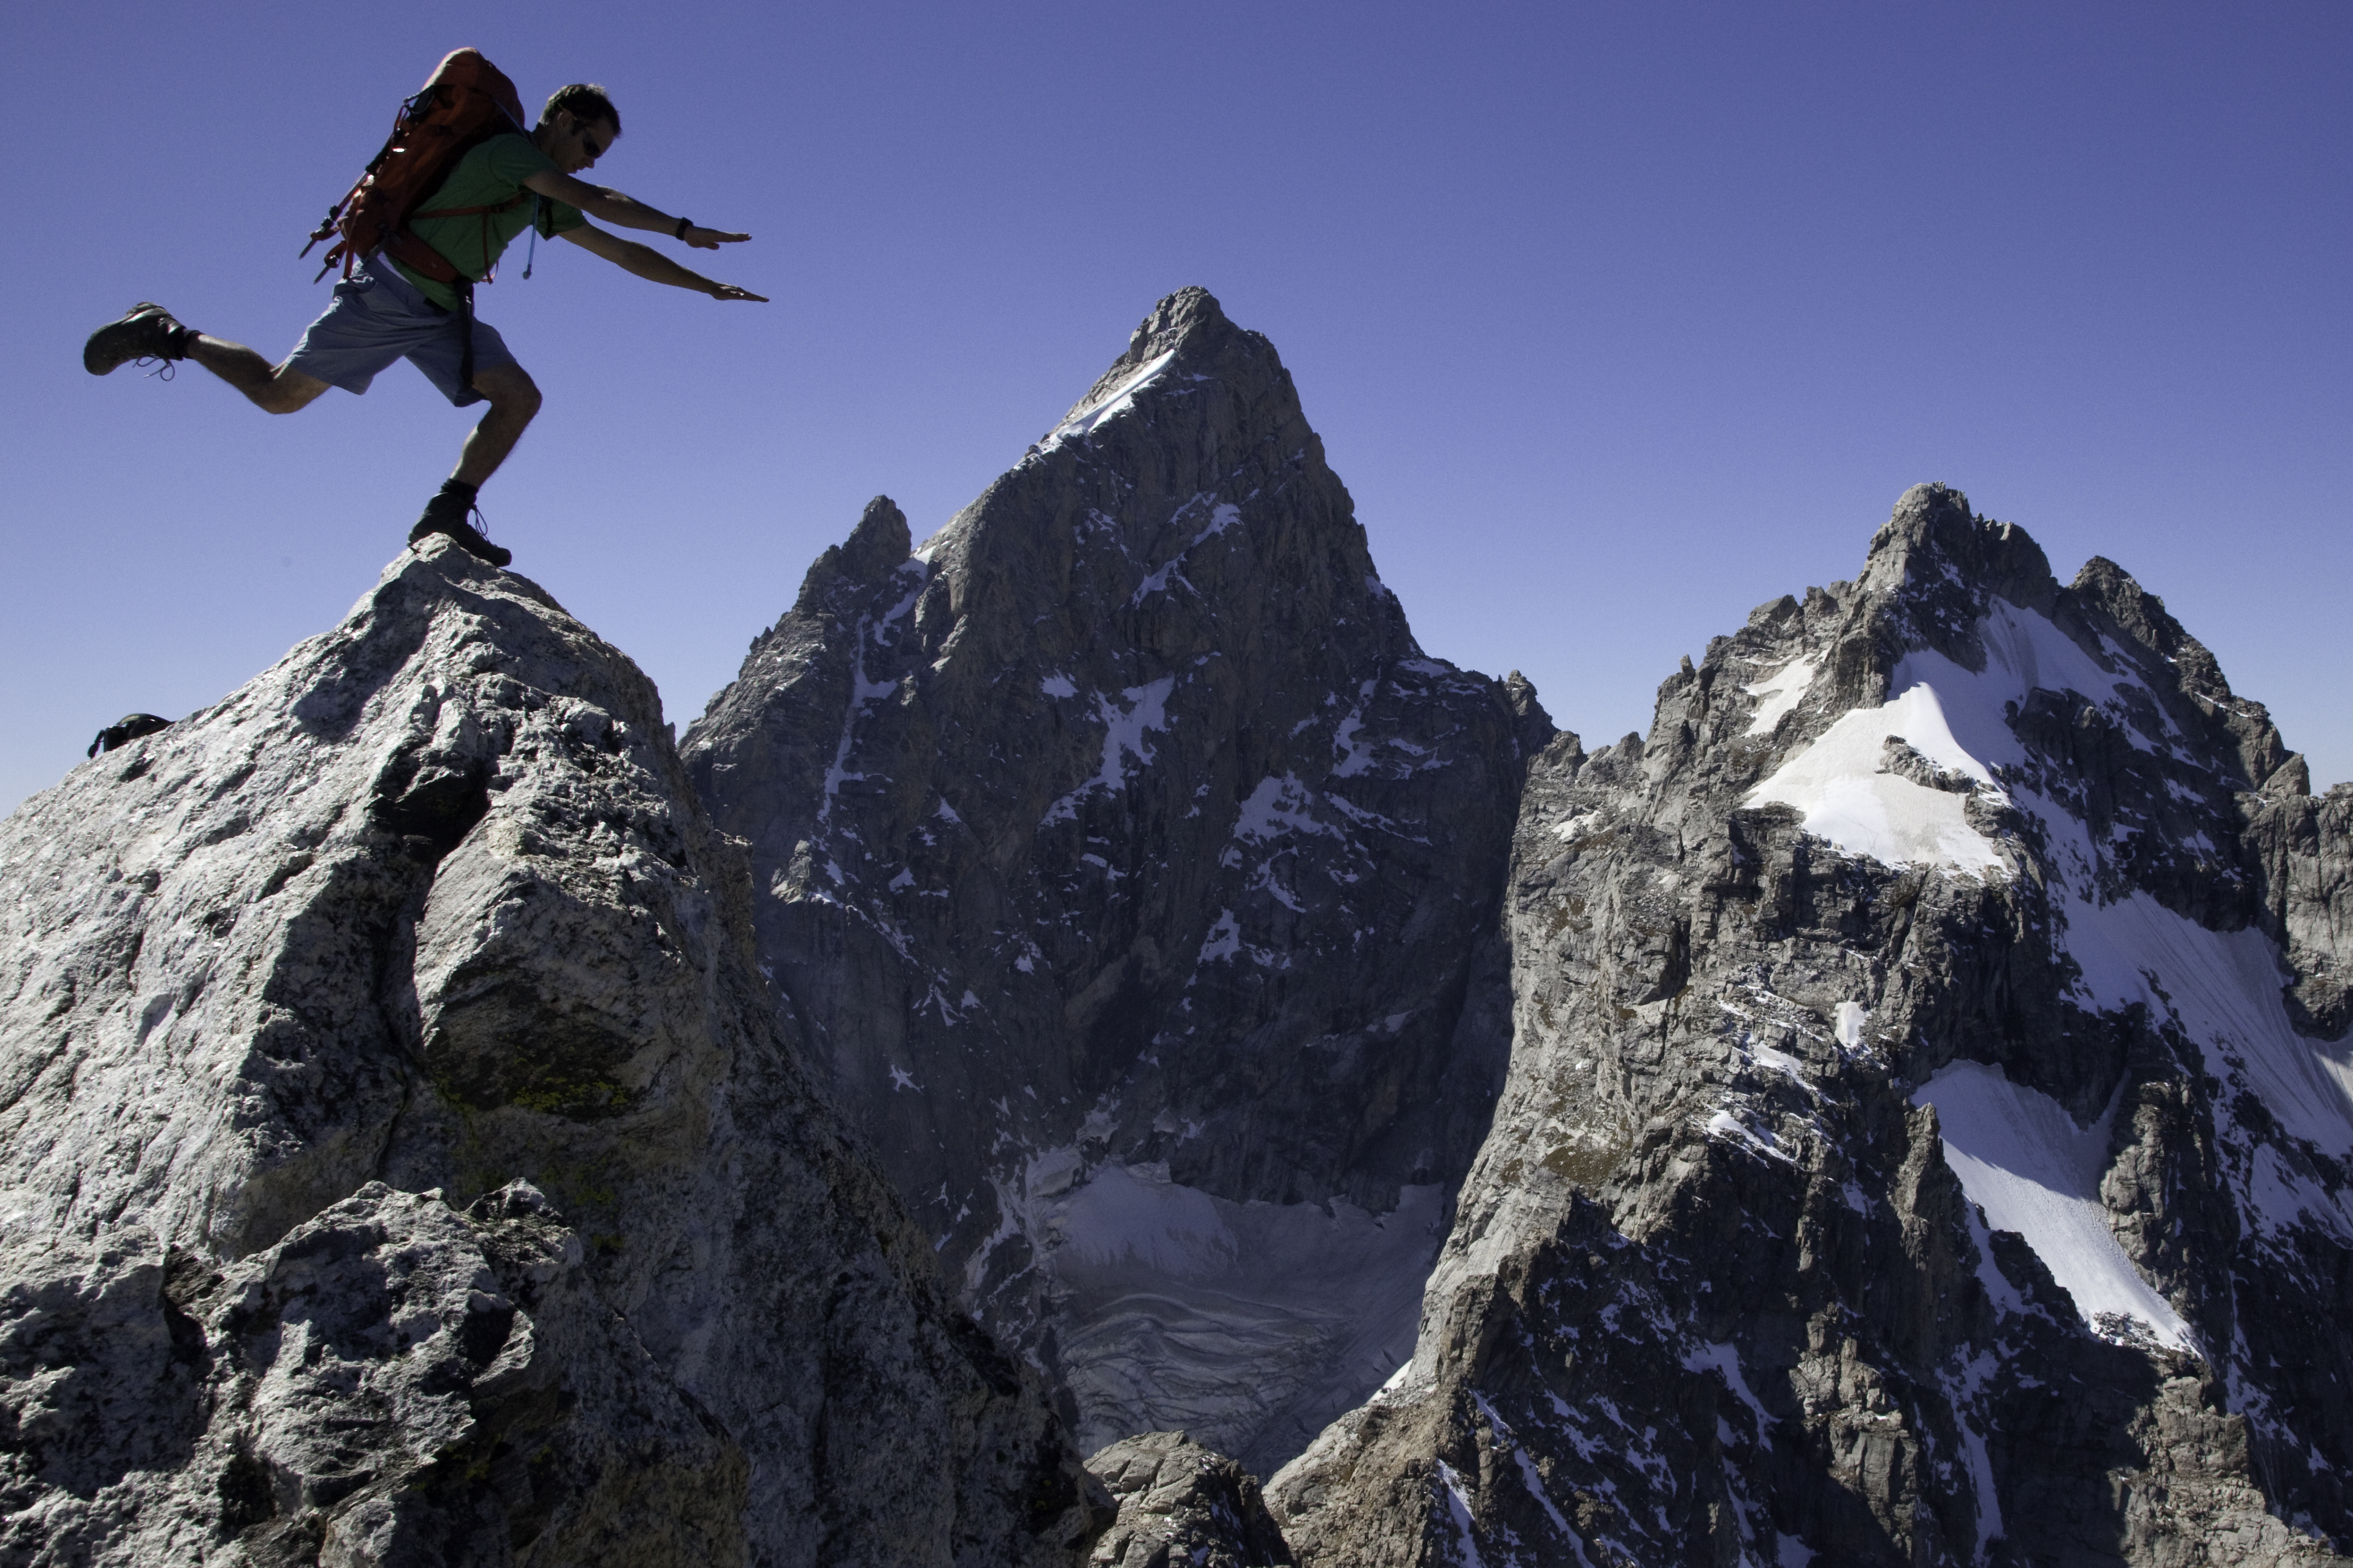 Climber on the summit of Teewinot with the Grand Teton and Mount Winster in the background.